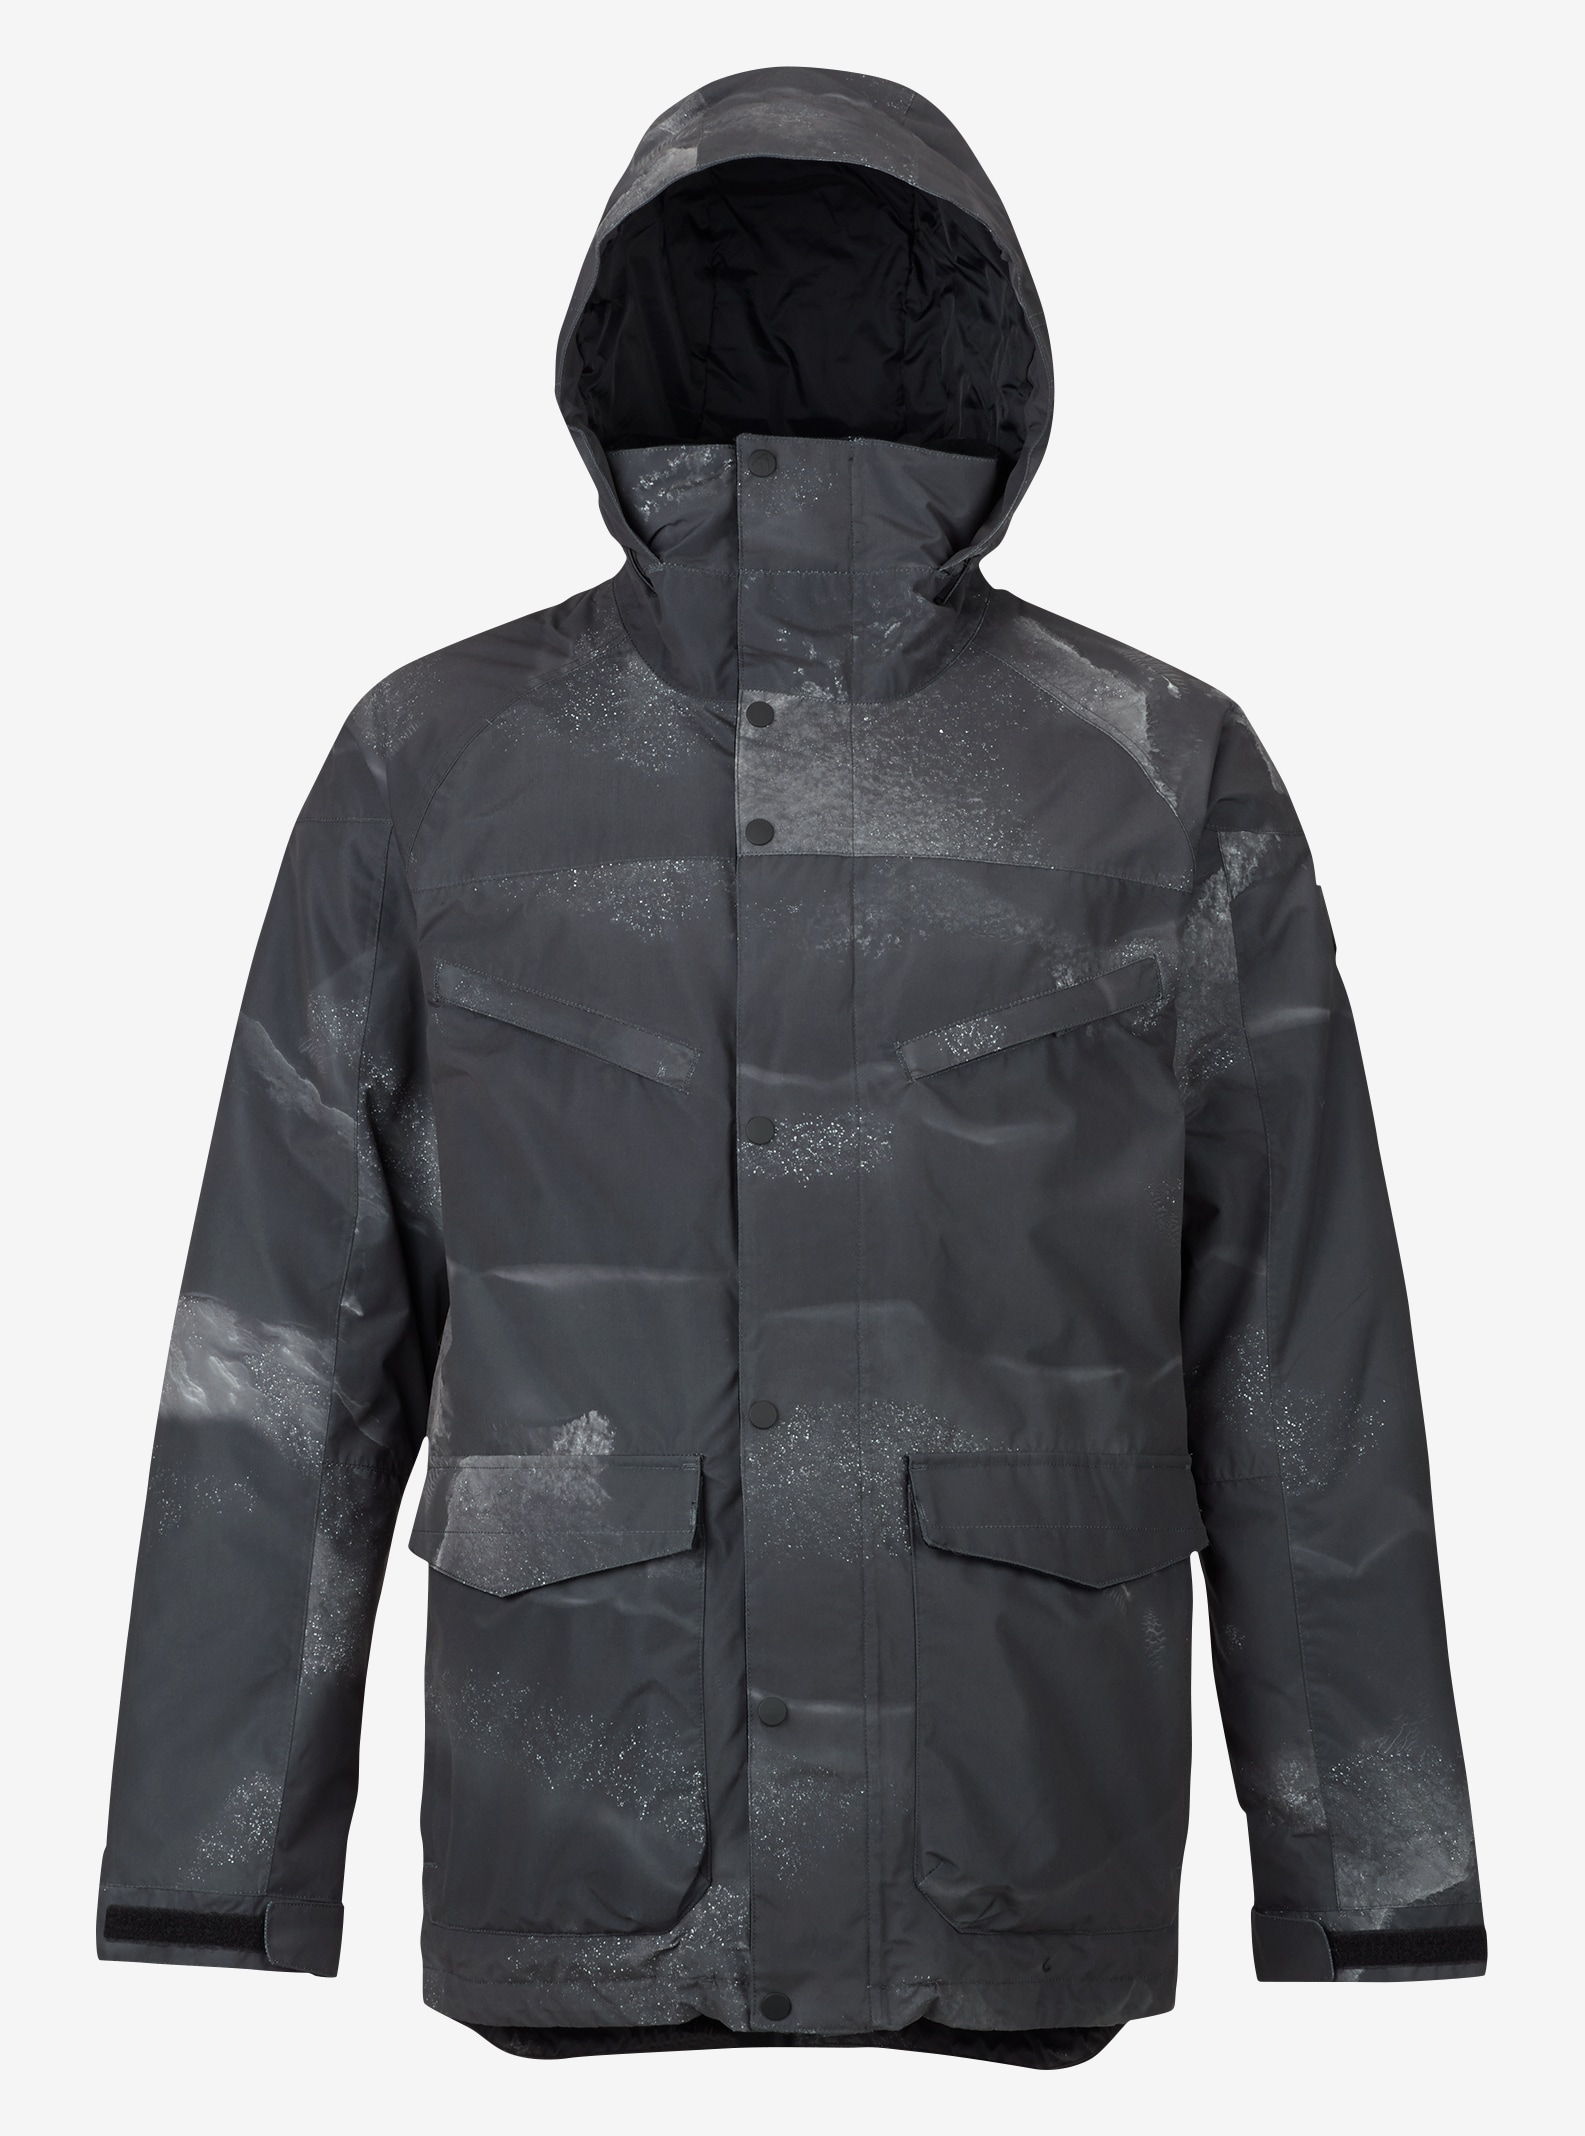 Men's Burton Breach Insulated Jacket shown in Zepheria